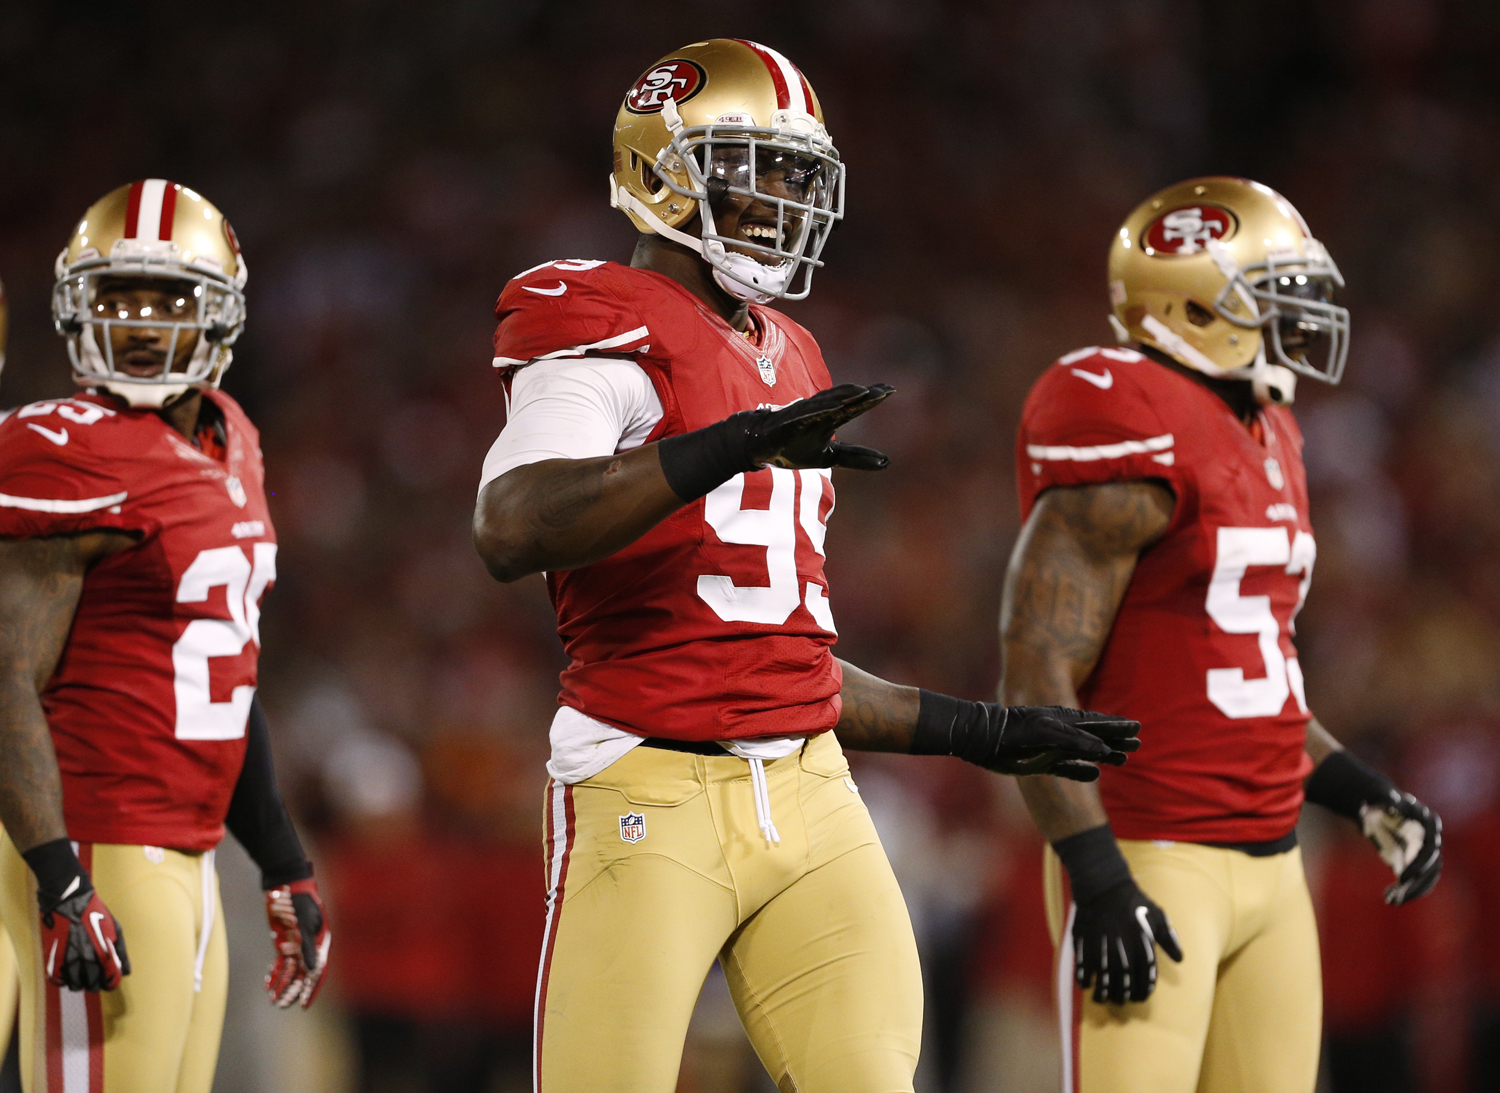 San Francisco 49ers outside linebacker Aldon Smith reacts after sacking Chicago Bears quarterback Jason Campbell during an NFL football game in San Francisco on Nov. 19, 2012